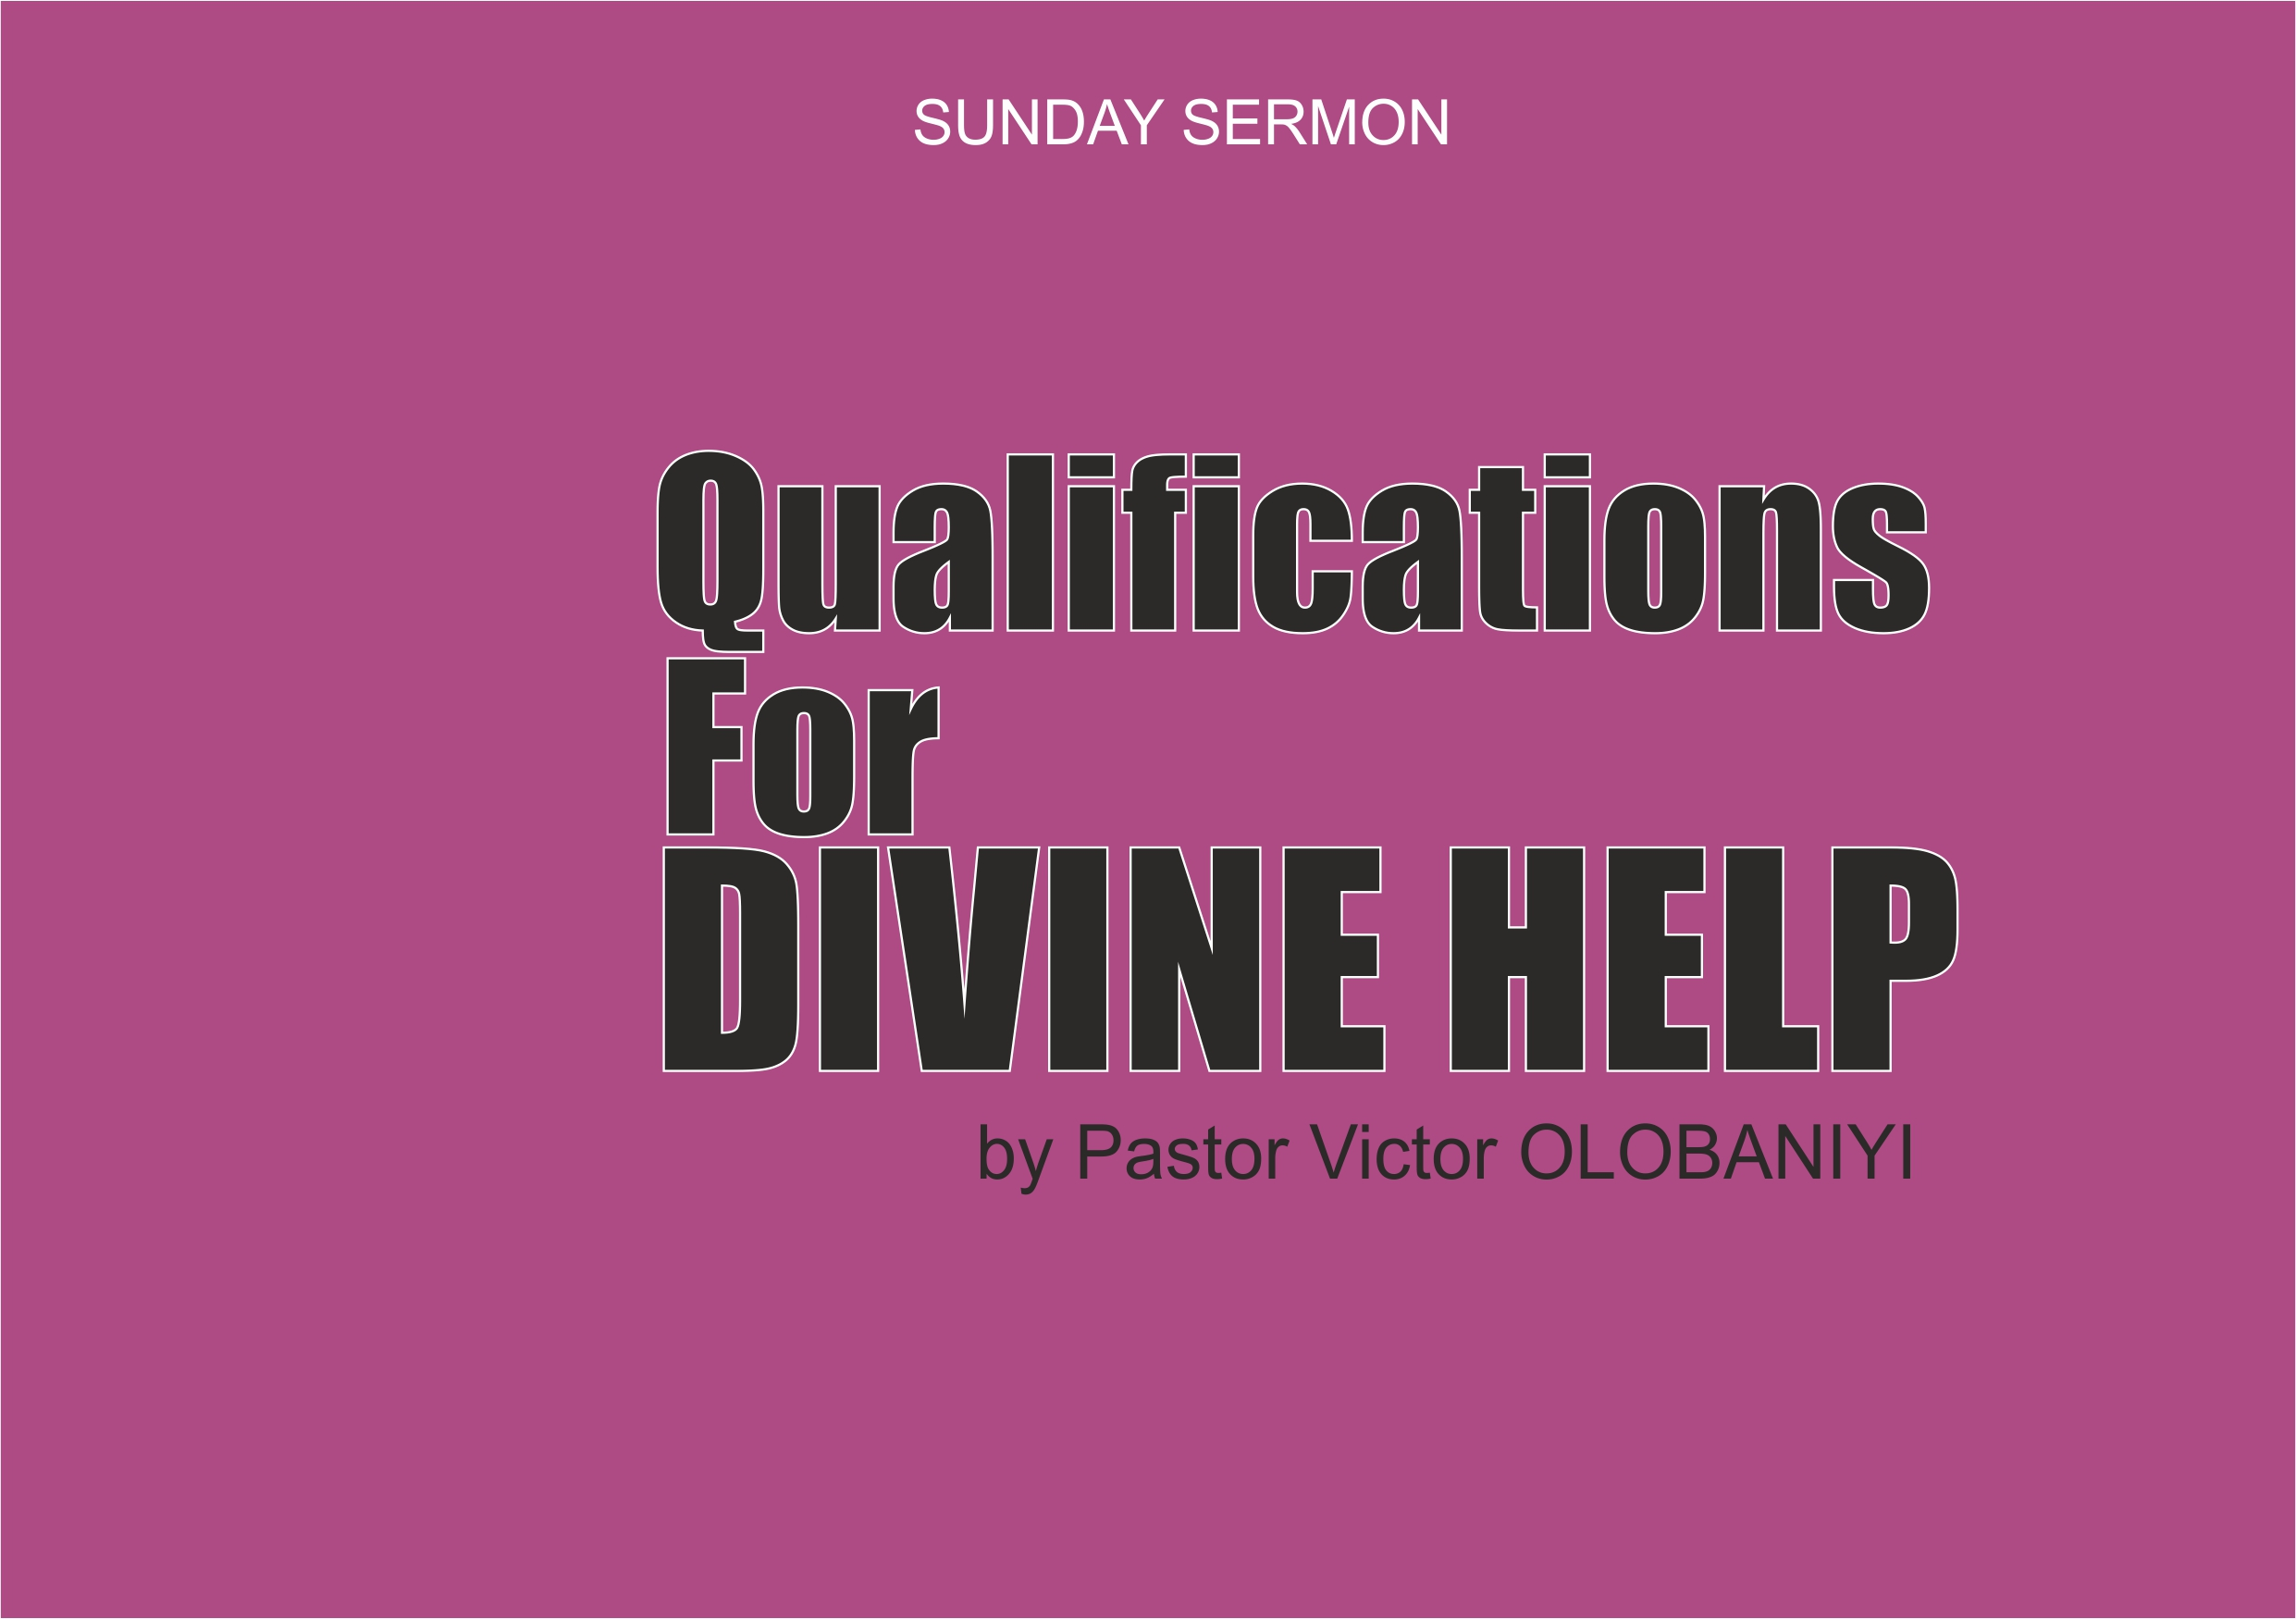 Qualifications for Divine Help, by Pastor Victor Olobaniyi